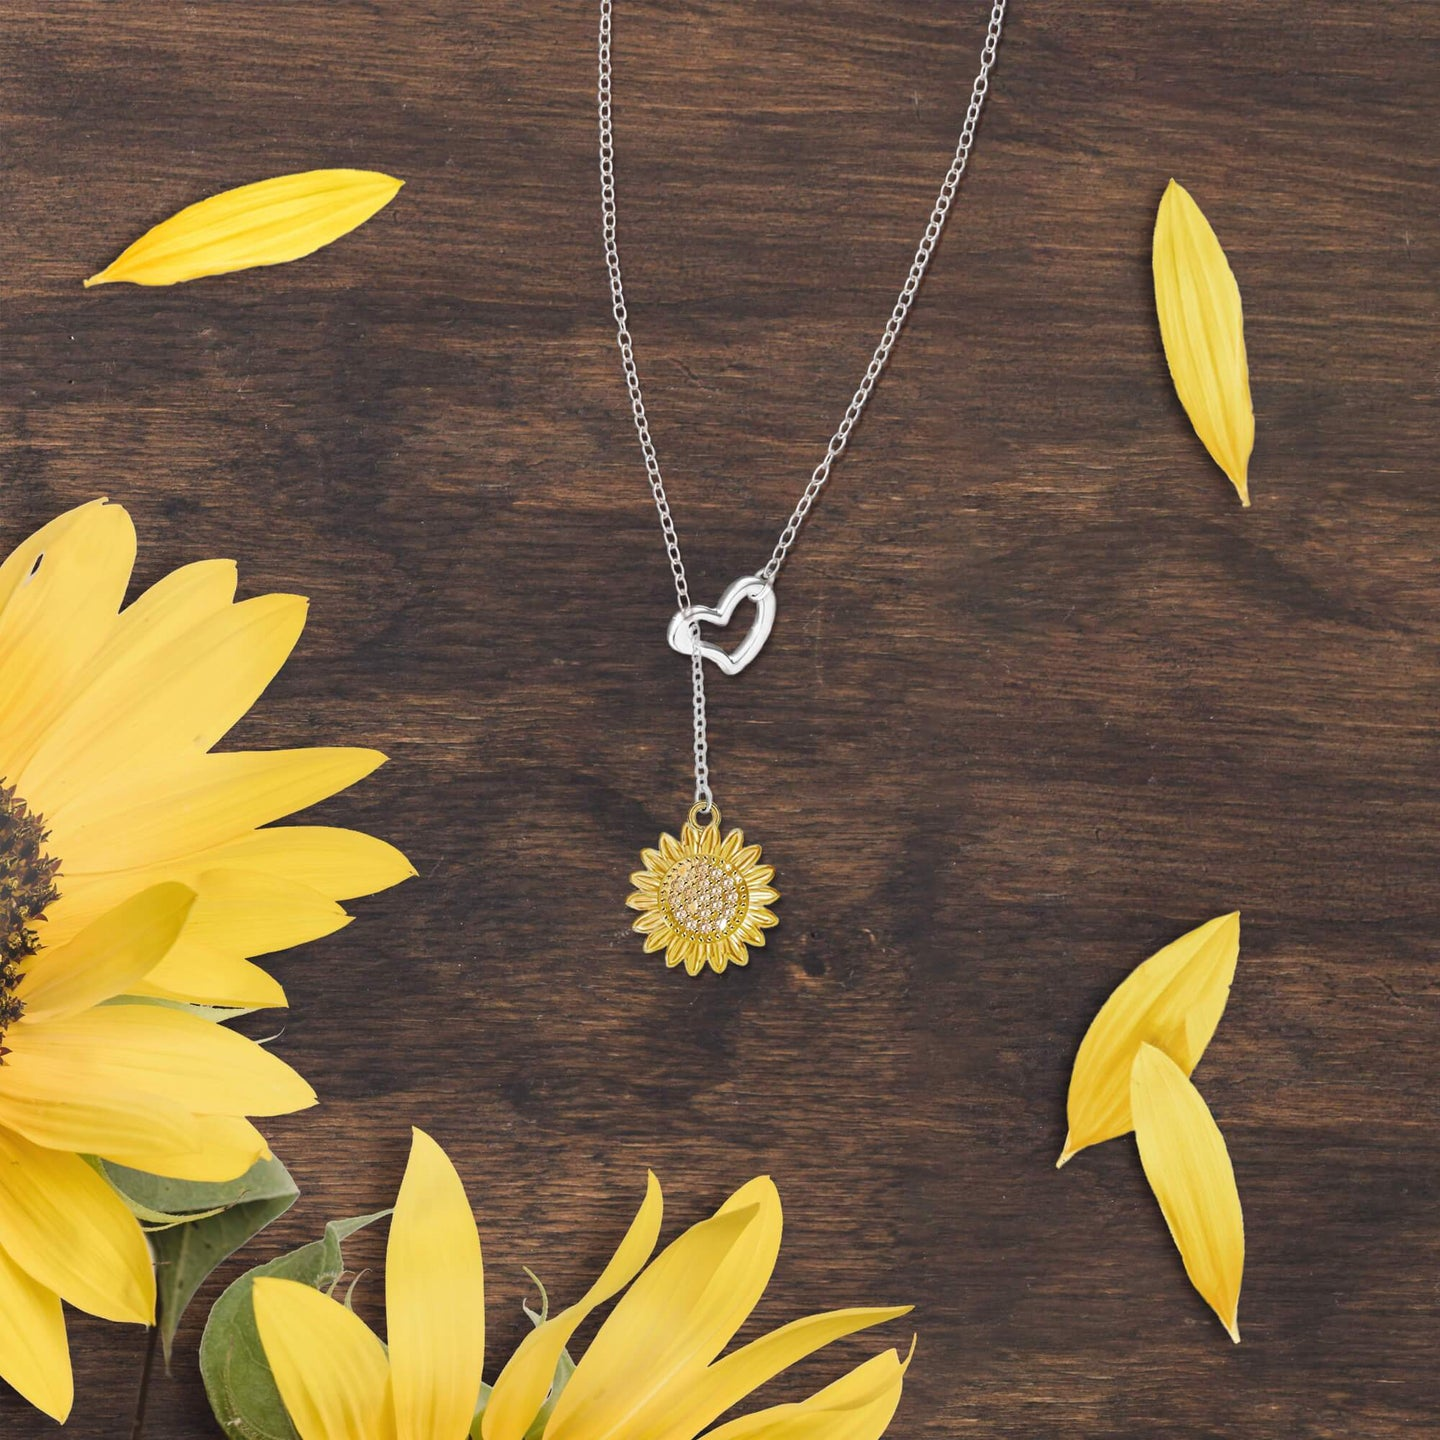 Sunflower and Heart Dangling Necklace